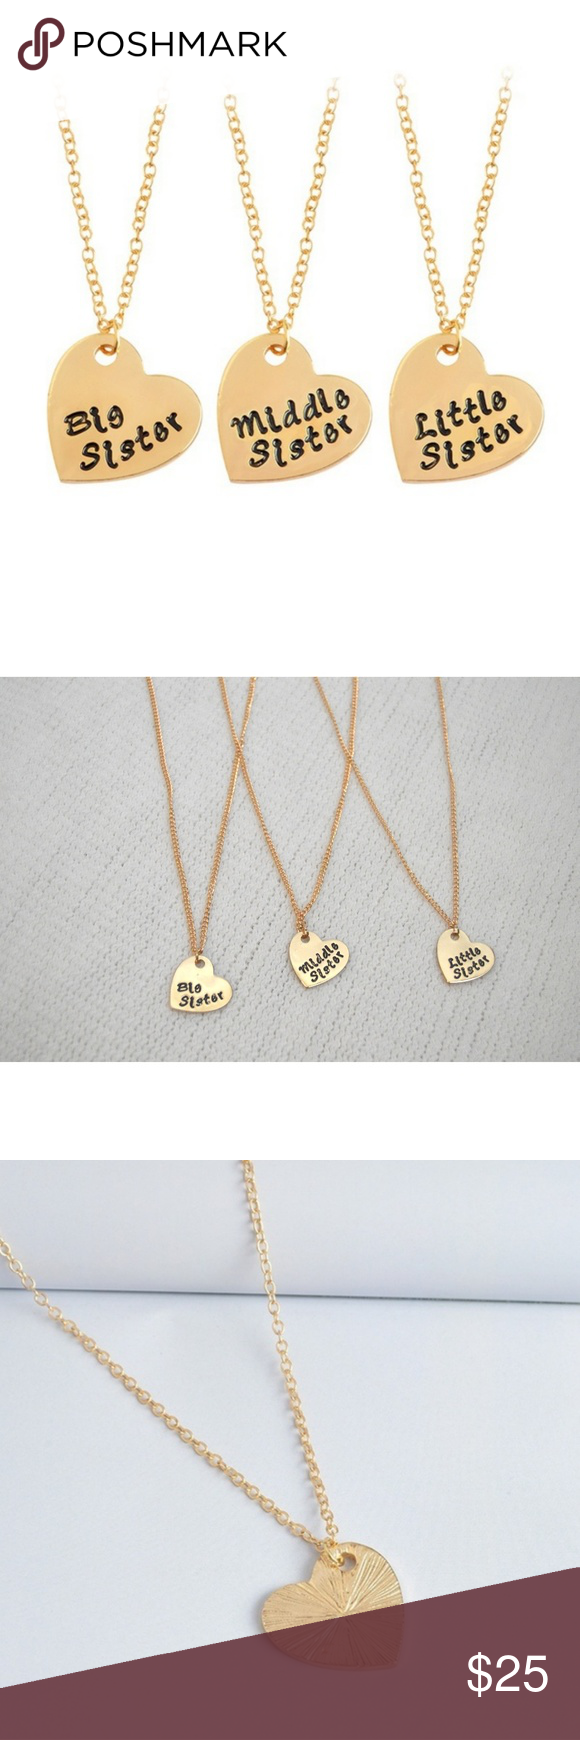 Soldnewset of necklace heart bigmidlil sister boutique chain